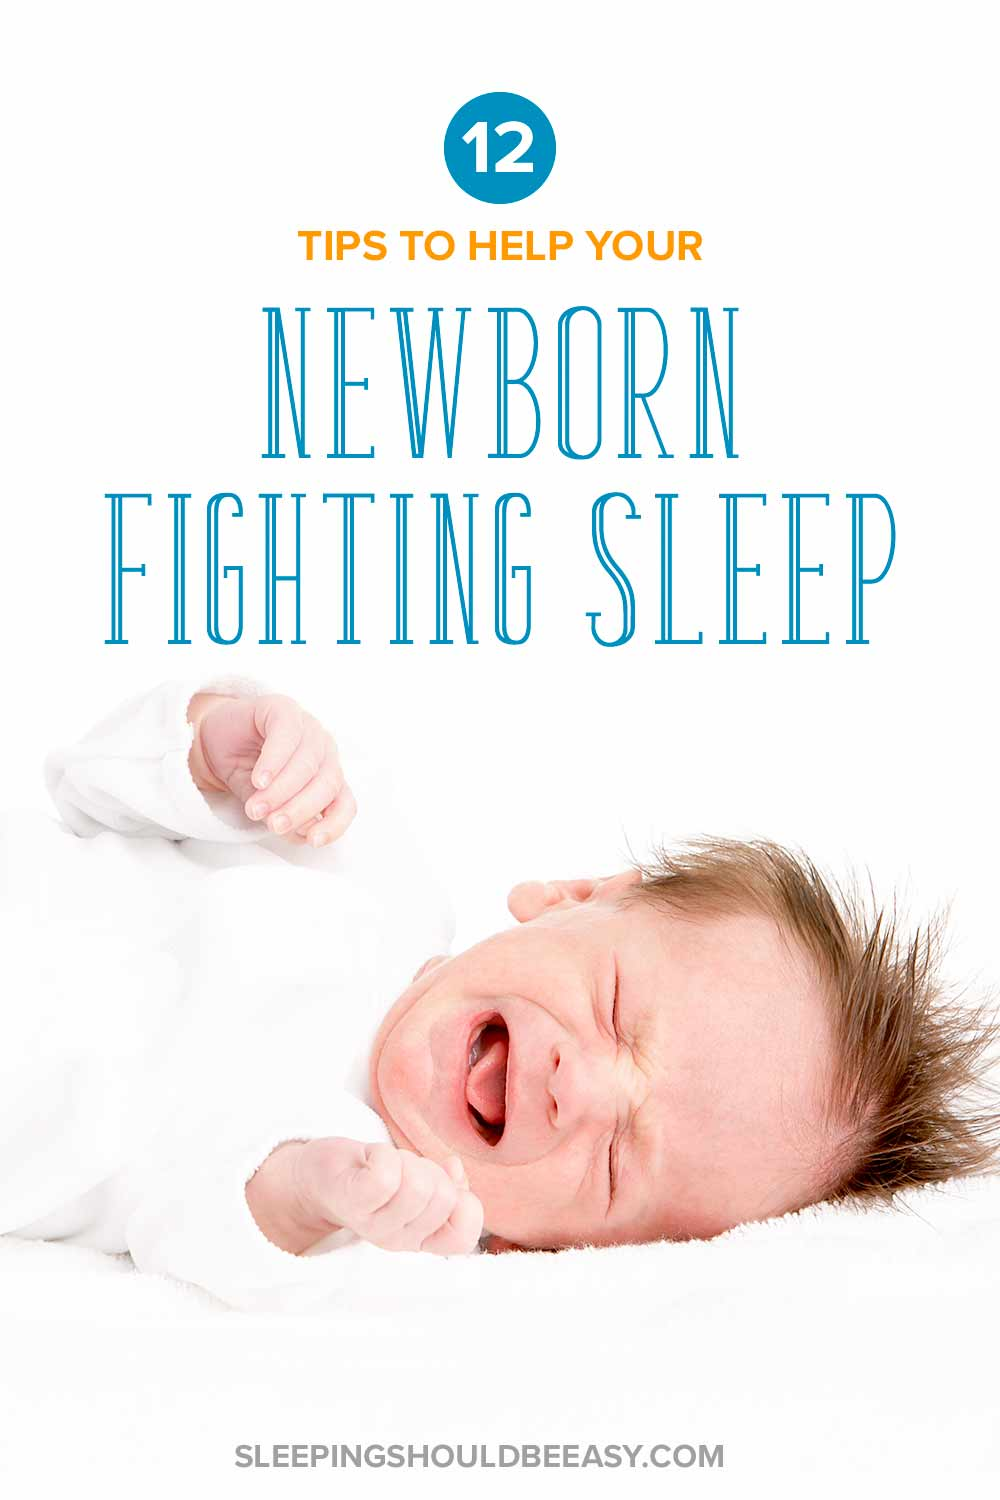 Newborn fighting sleep and crying